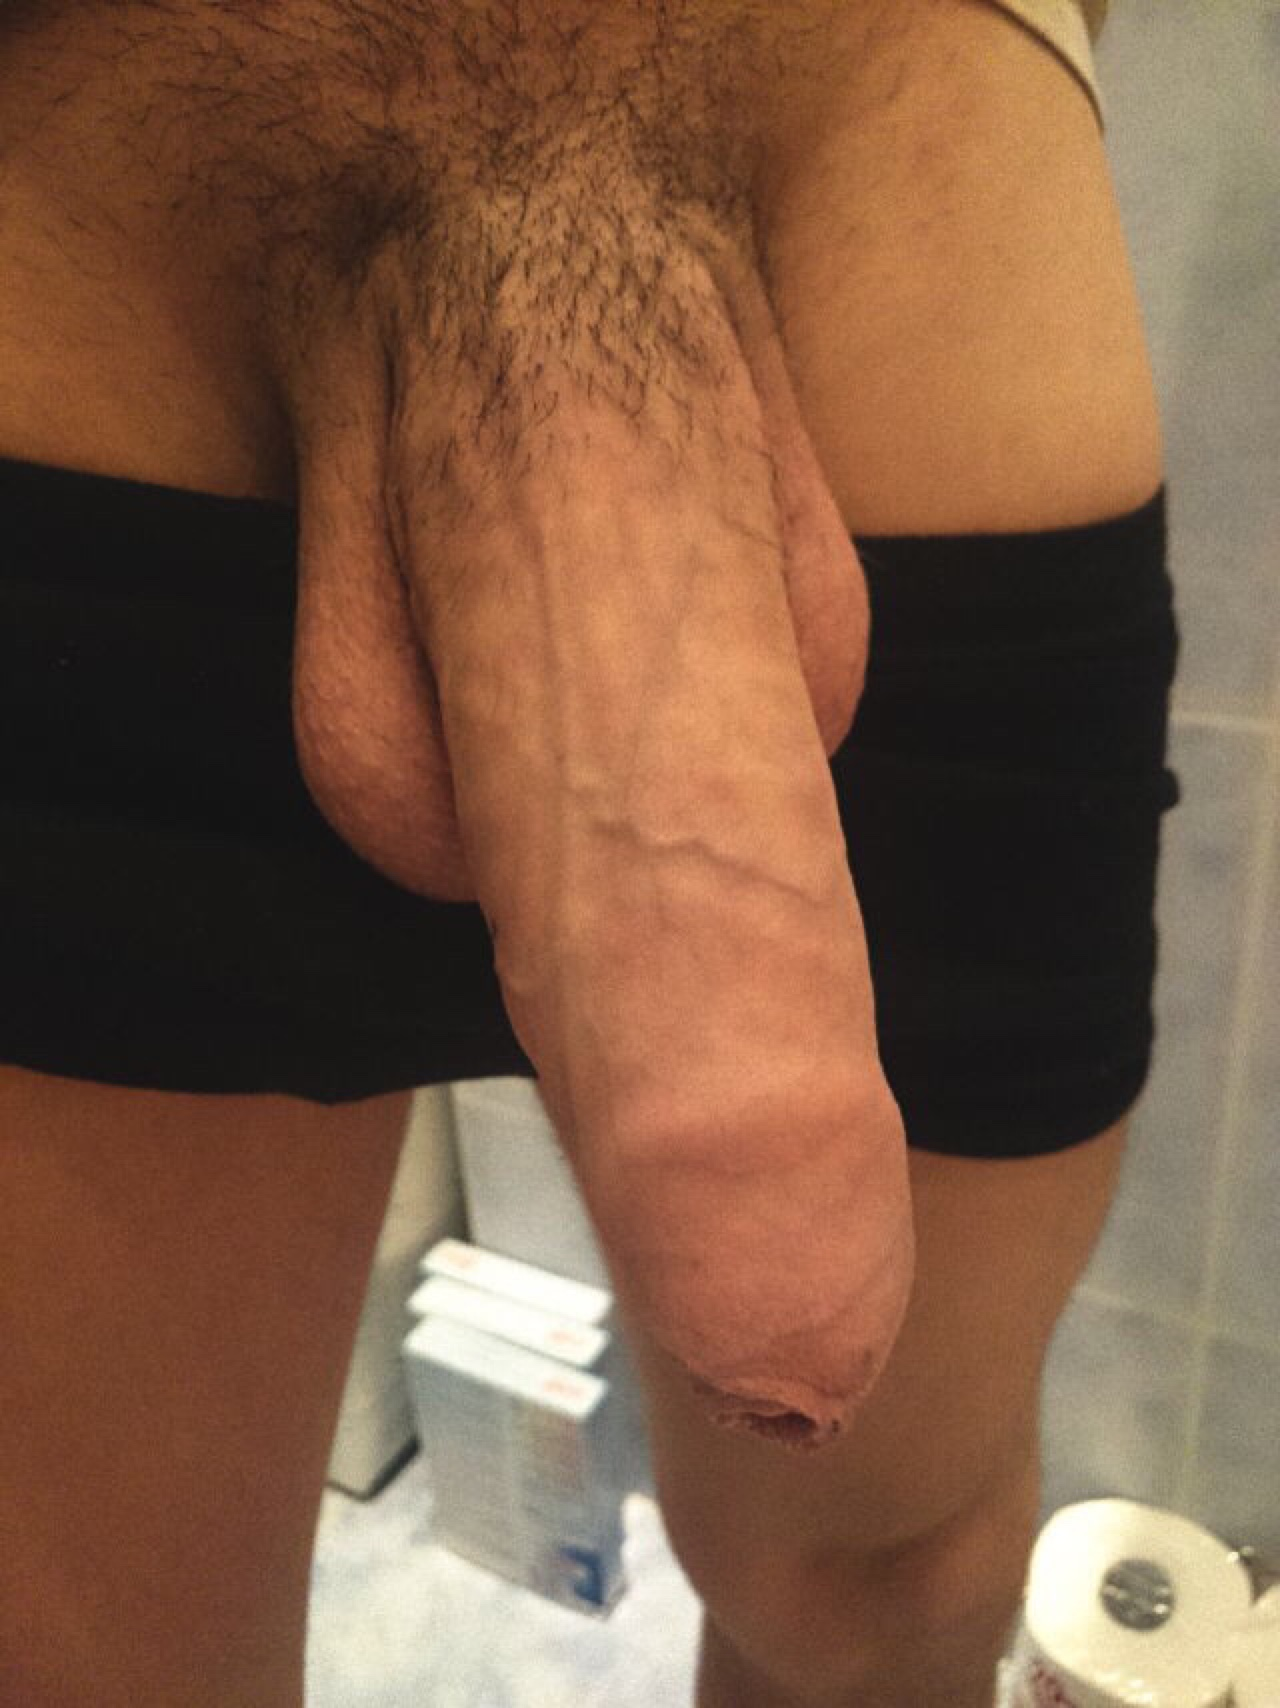 Uncut cock video tumblr